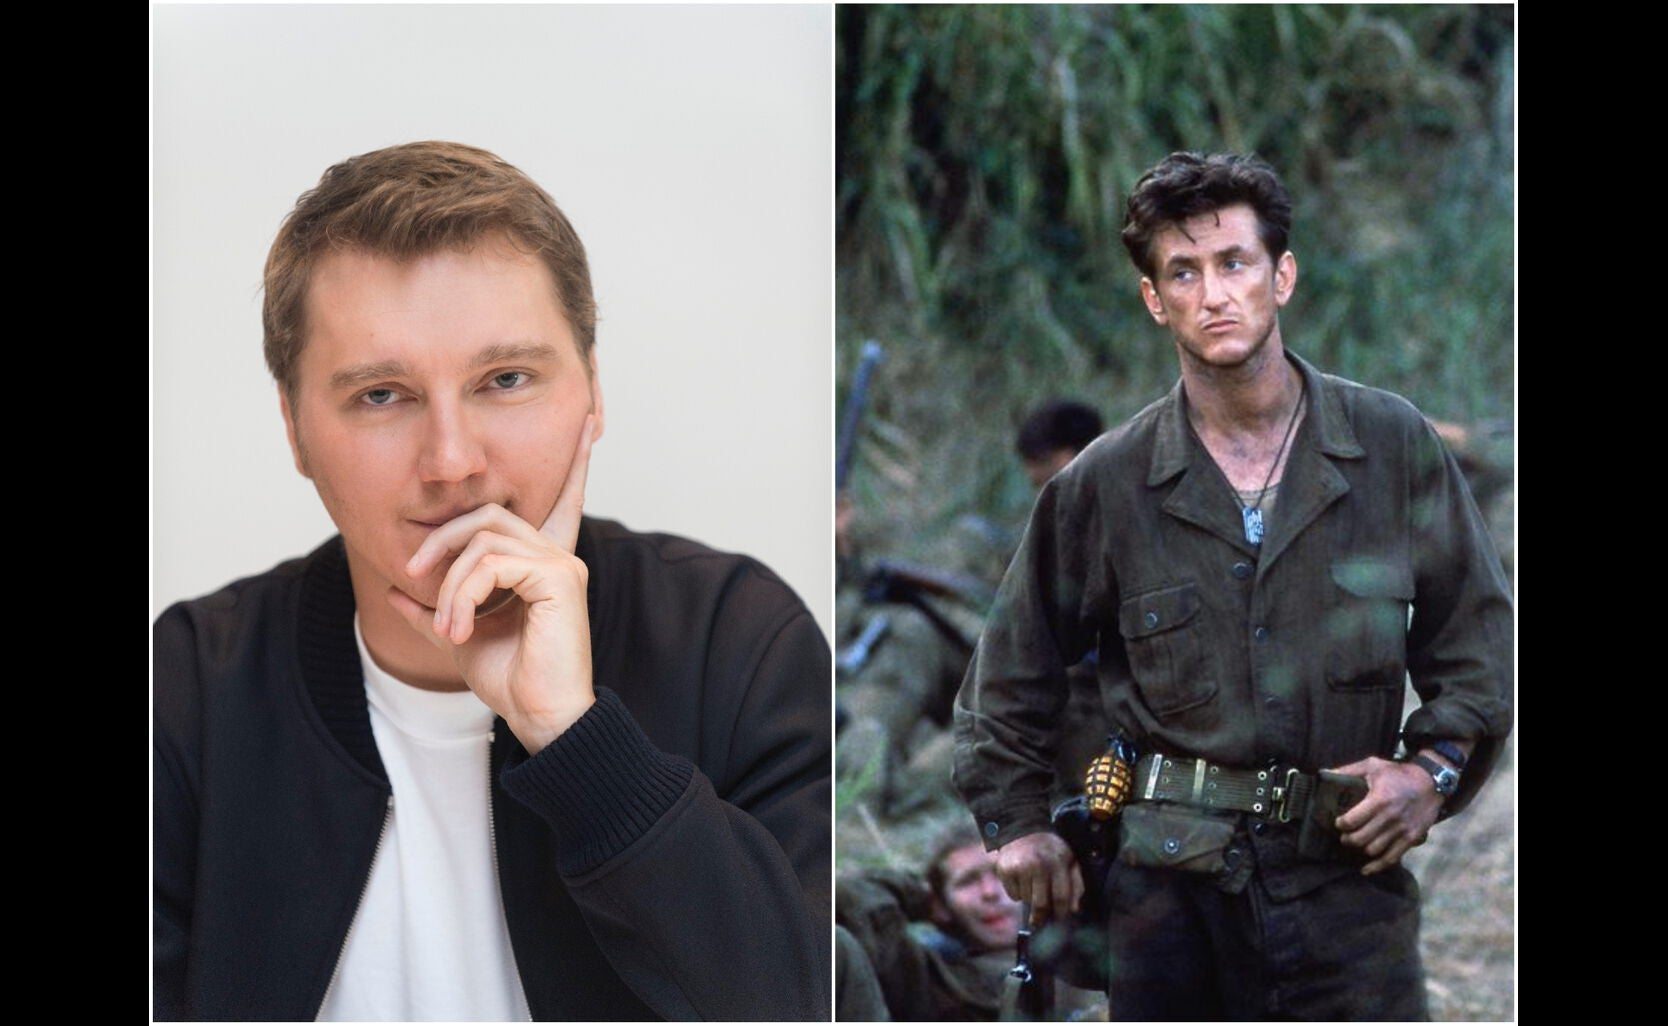 """Actor and director Paul Dano, Golden Globe nominee, and a scene from """"The Thin Red Line"""", 1998"""